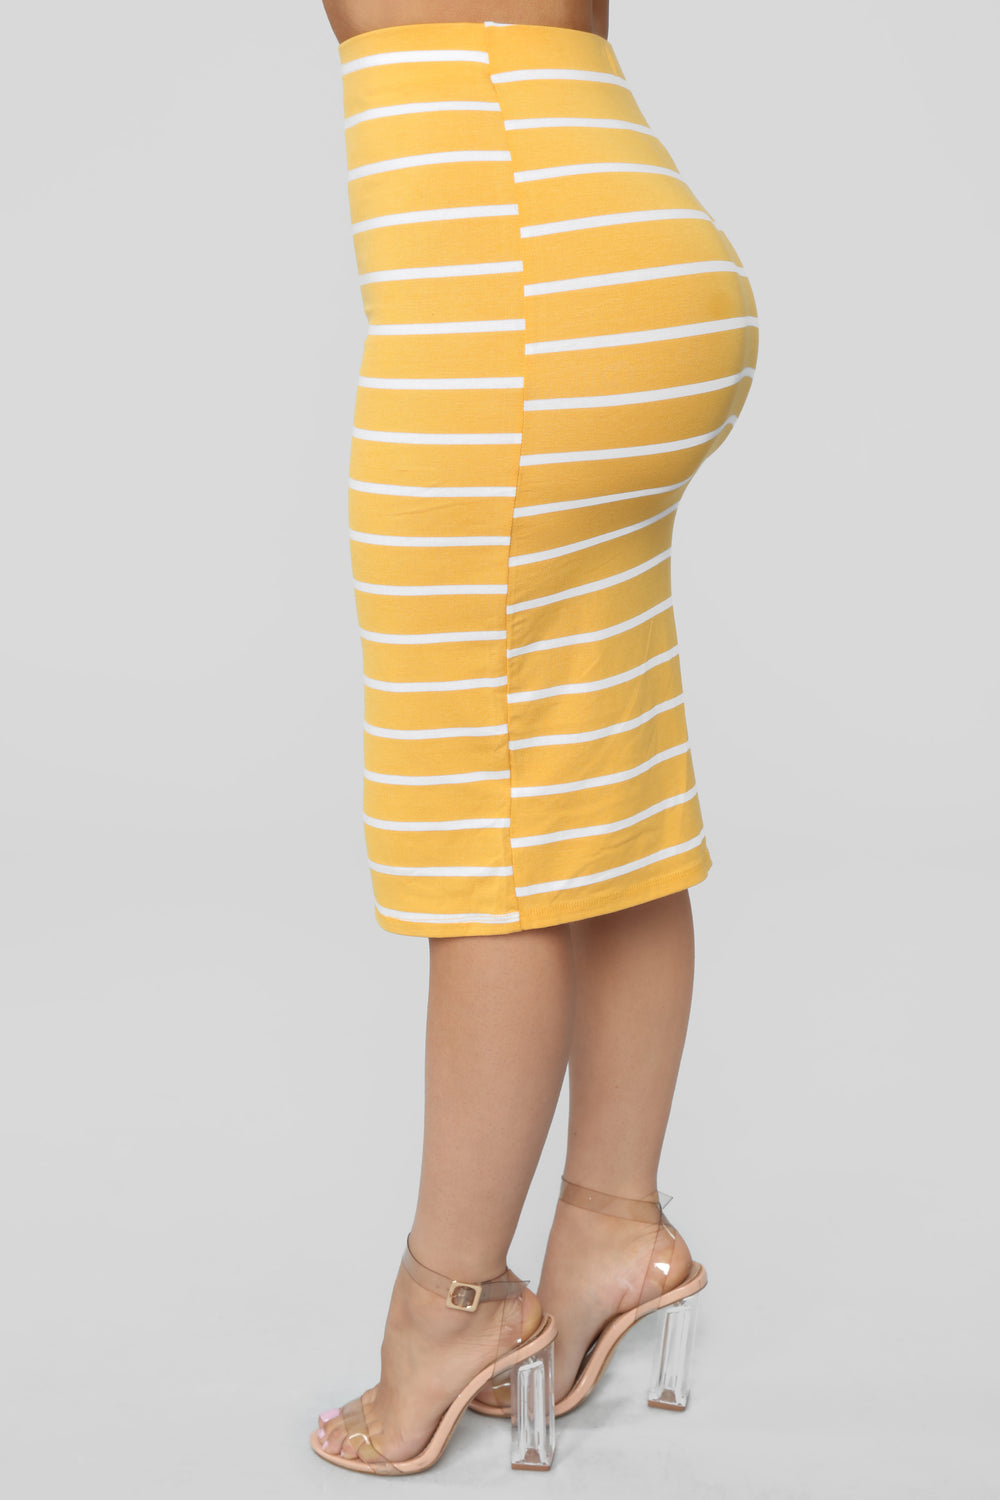 Lets Keep Things Casual Striped Skirt - Yellow/combo